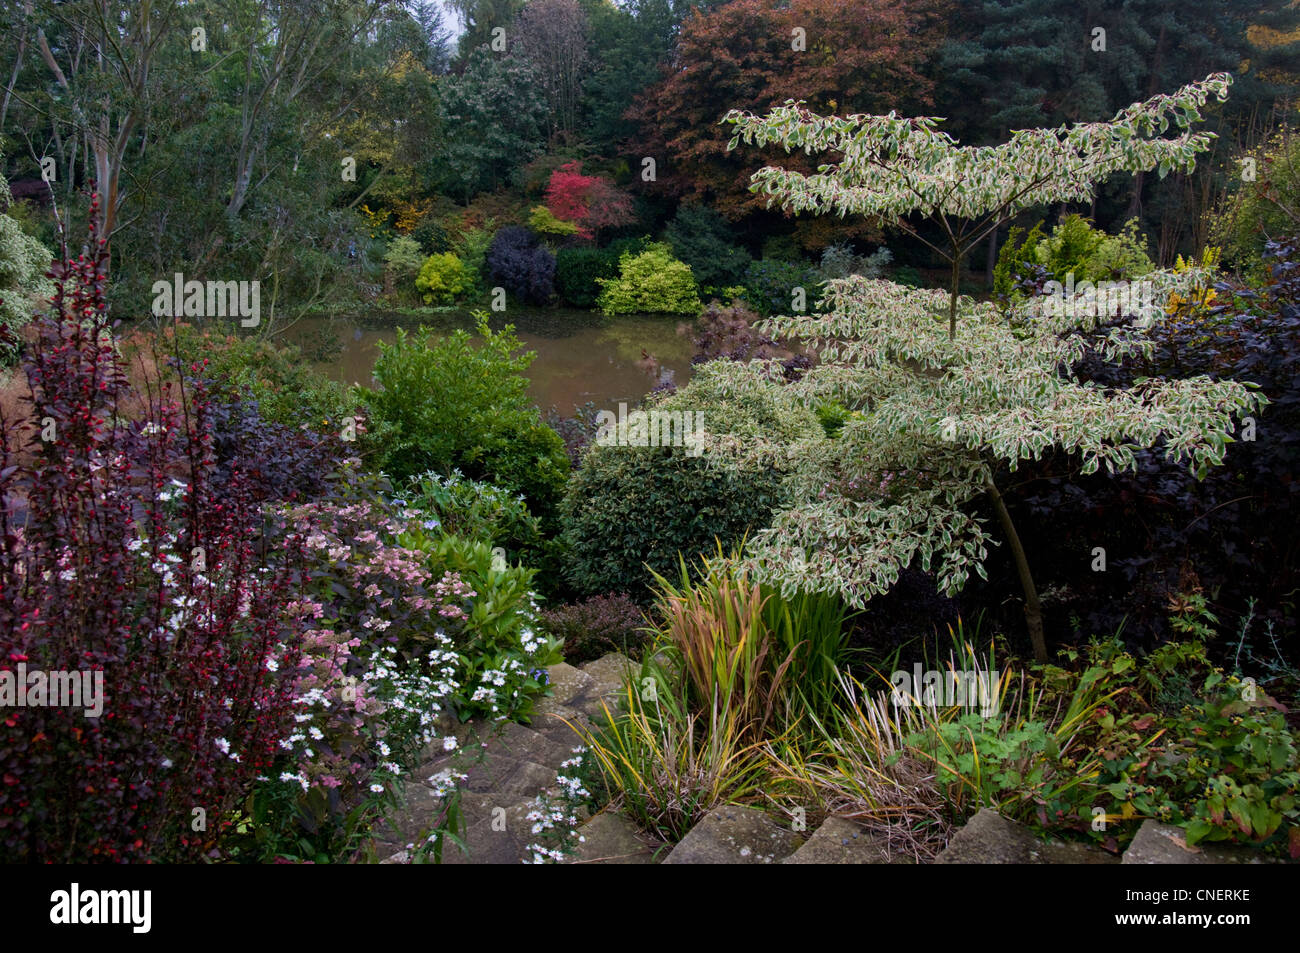 Steps lead down past colourful flower beds to the lake at The Dingle Garden with beautiful trees on the far bank - Stock Image